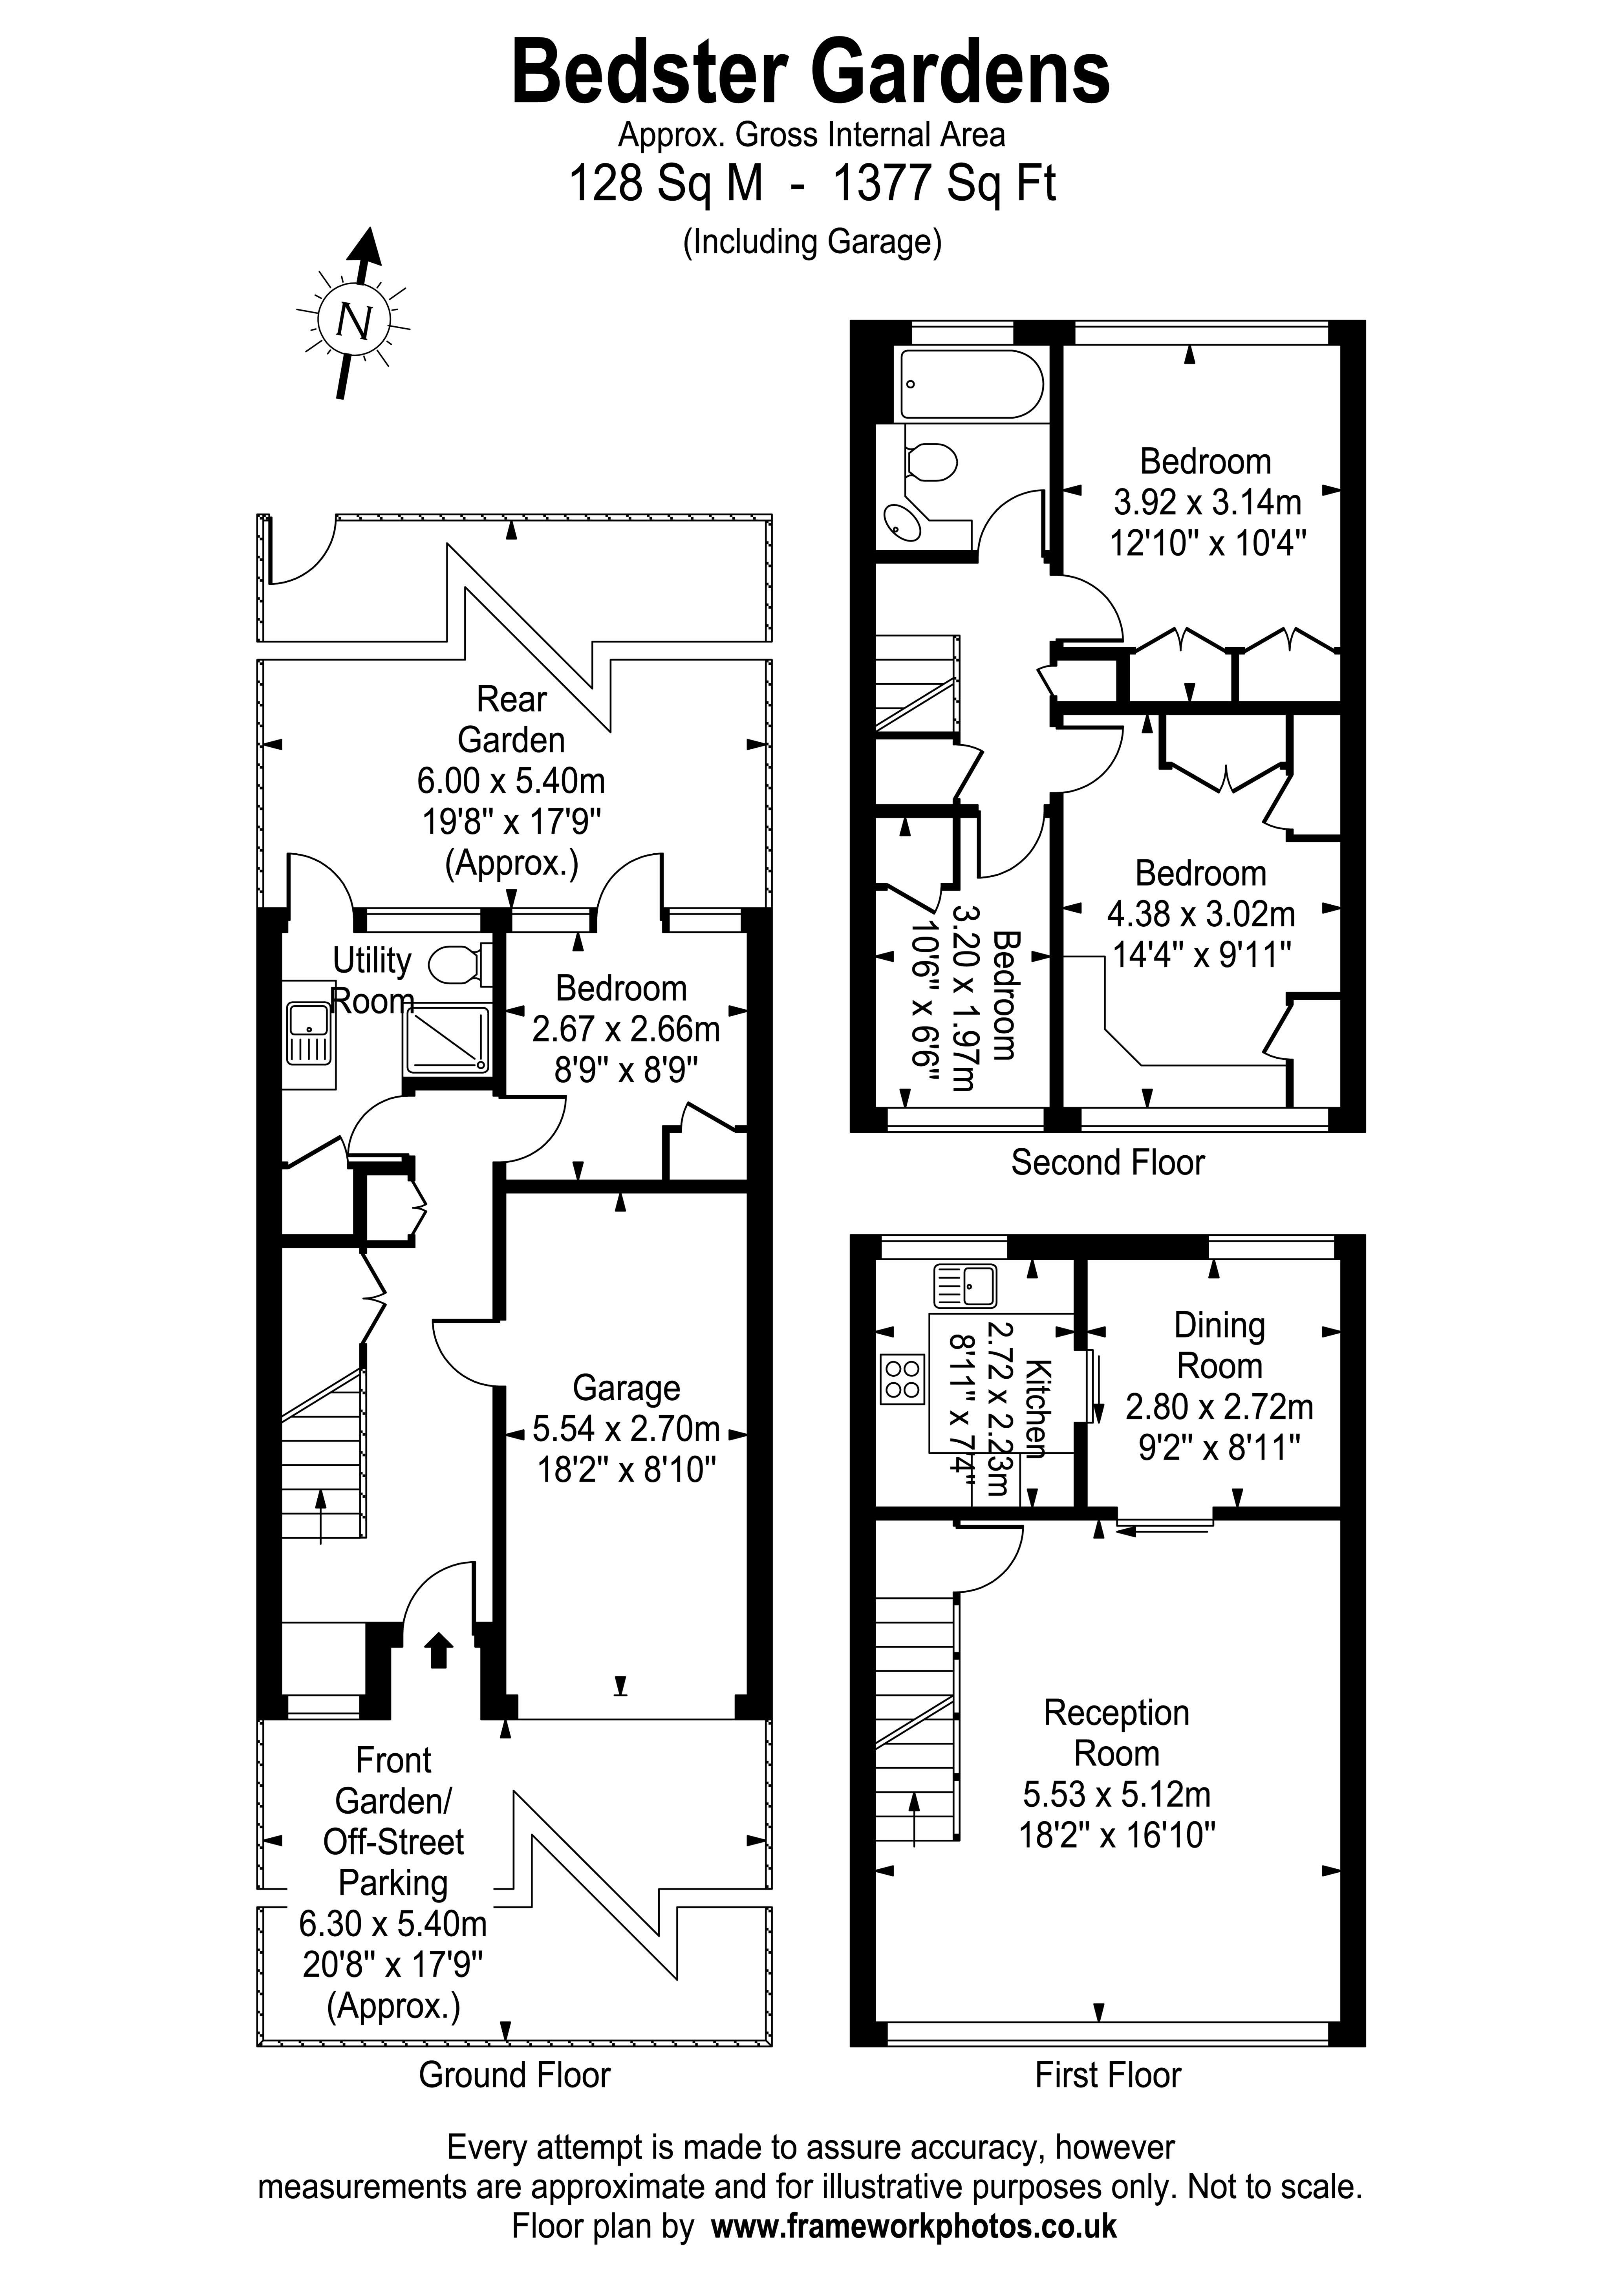 Floorplans For Bedster Gardens, West Molesey